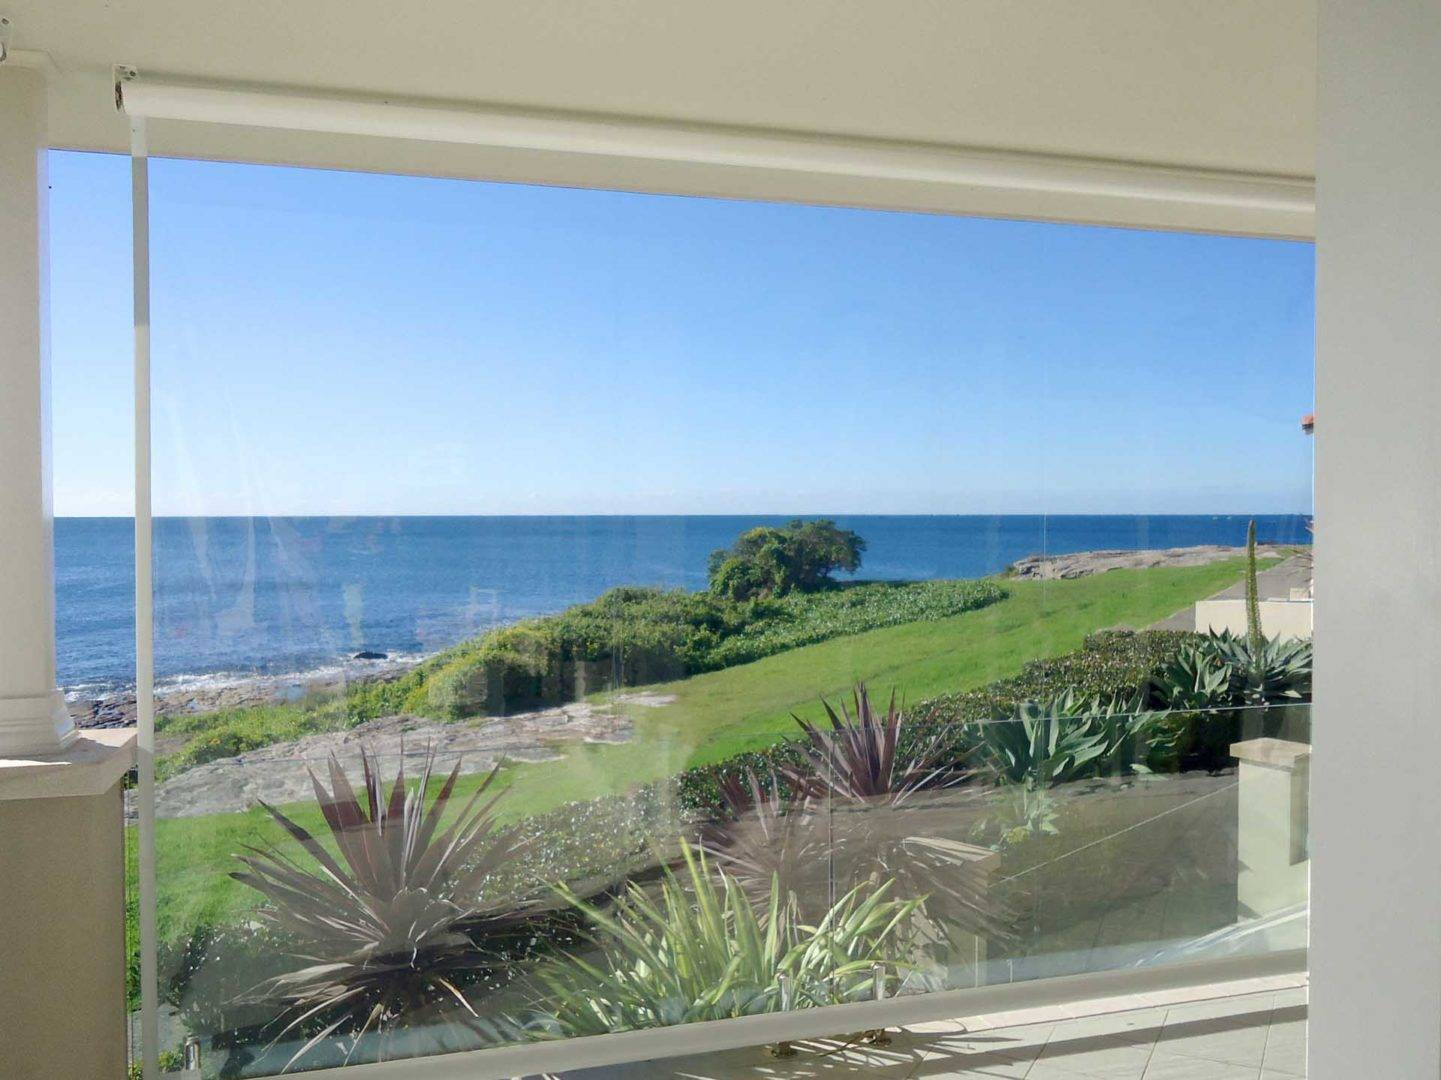 Maintain your view with Café Blinds from Australian Outdoor Living - Cafe blinds protect you against the weather while you get to maintain your view, Australian Outdoor Living.